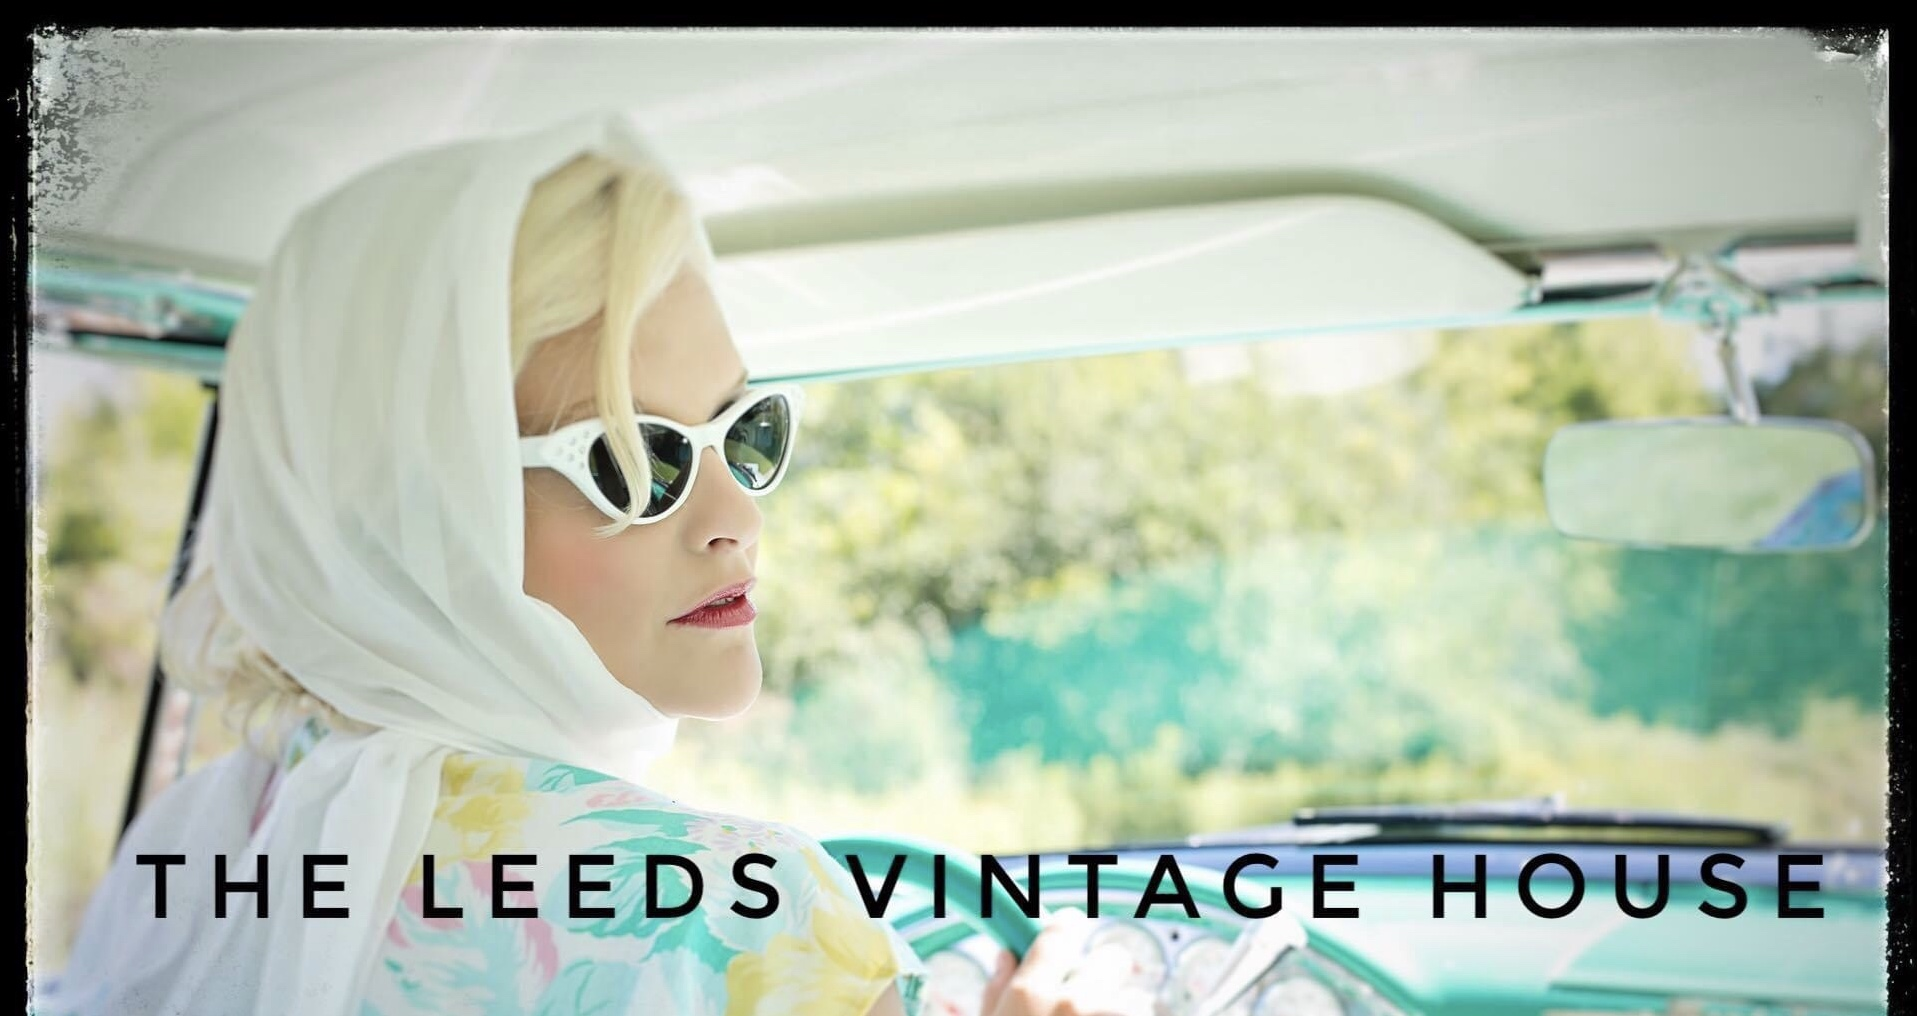 The Leeds Vintage House